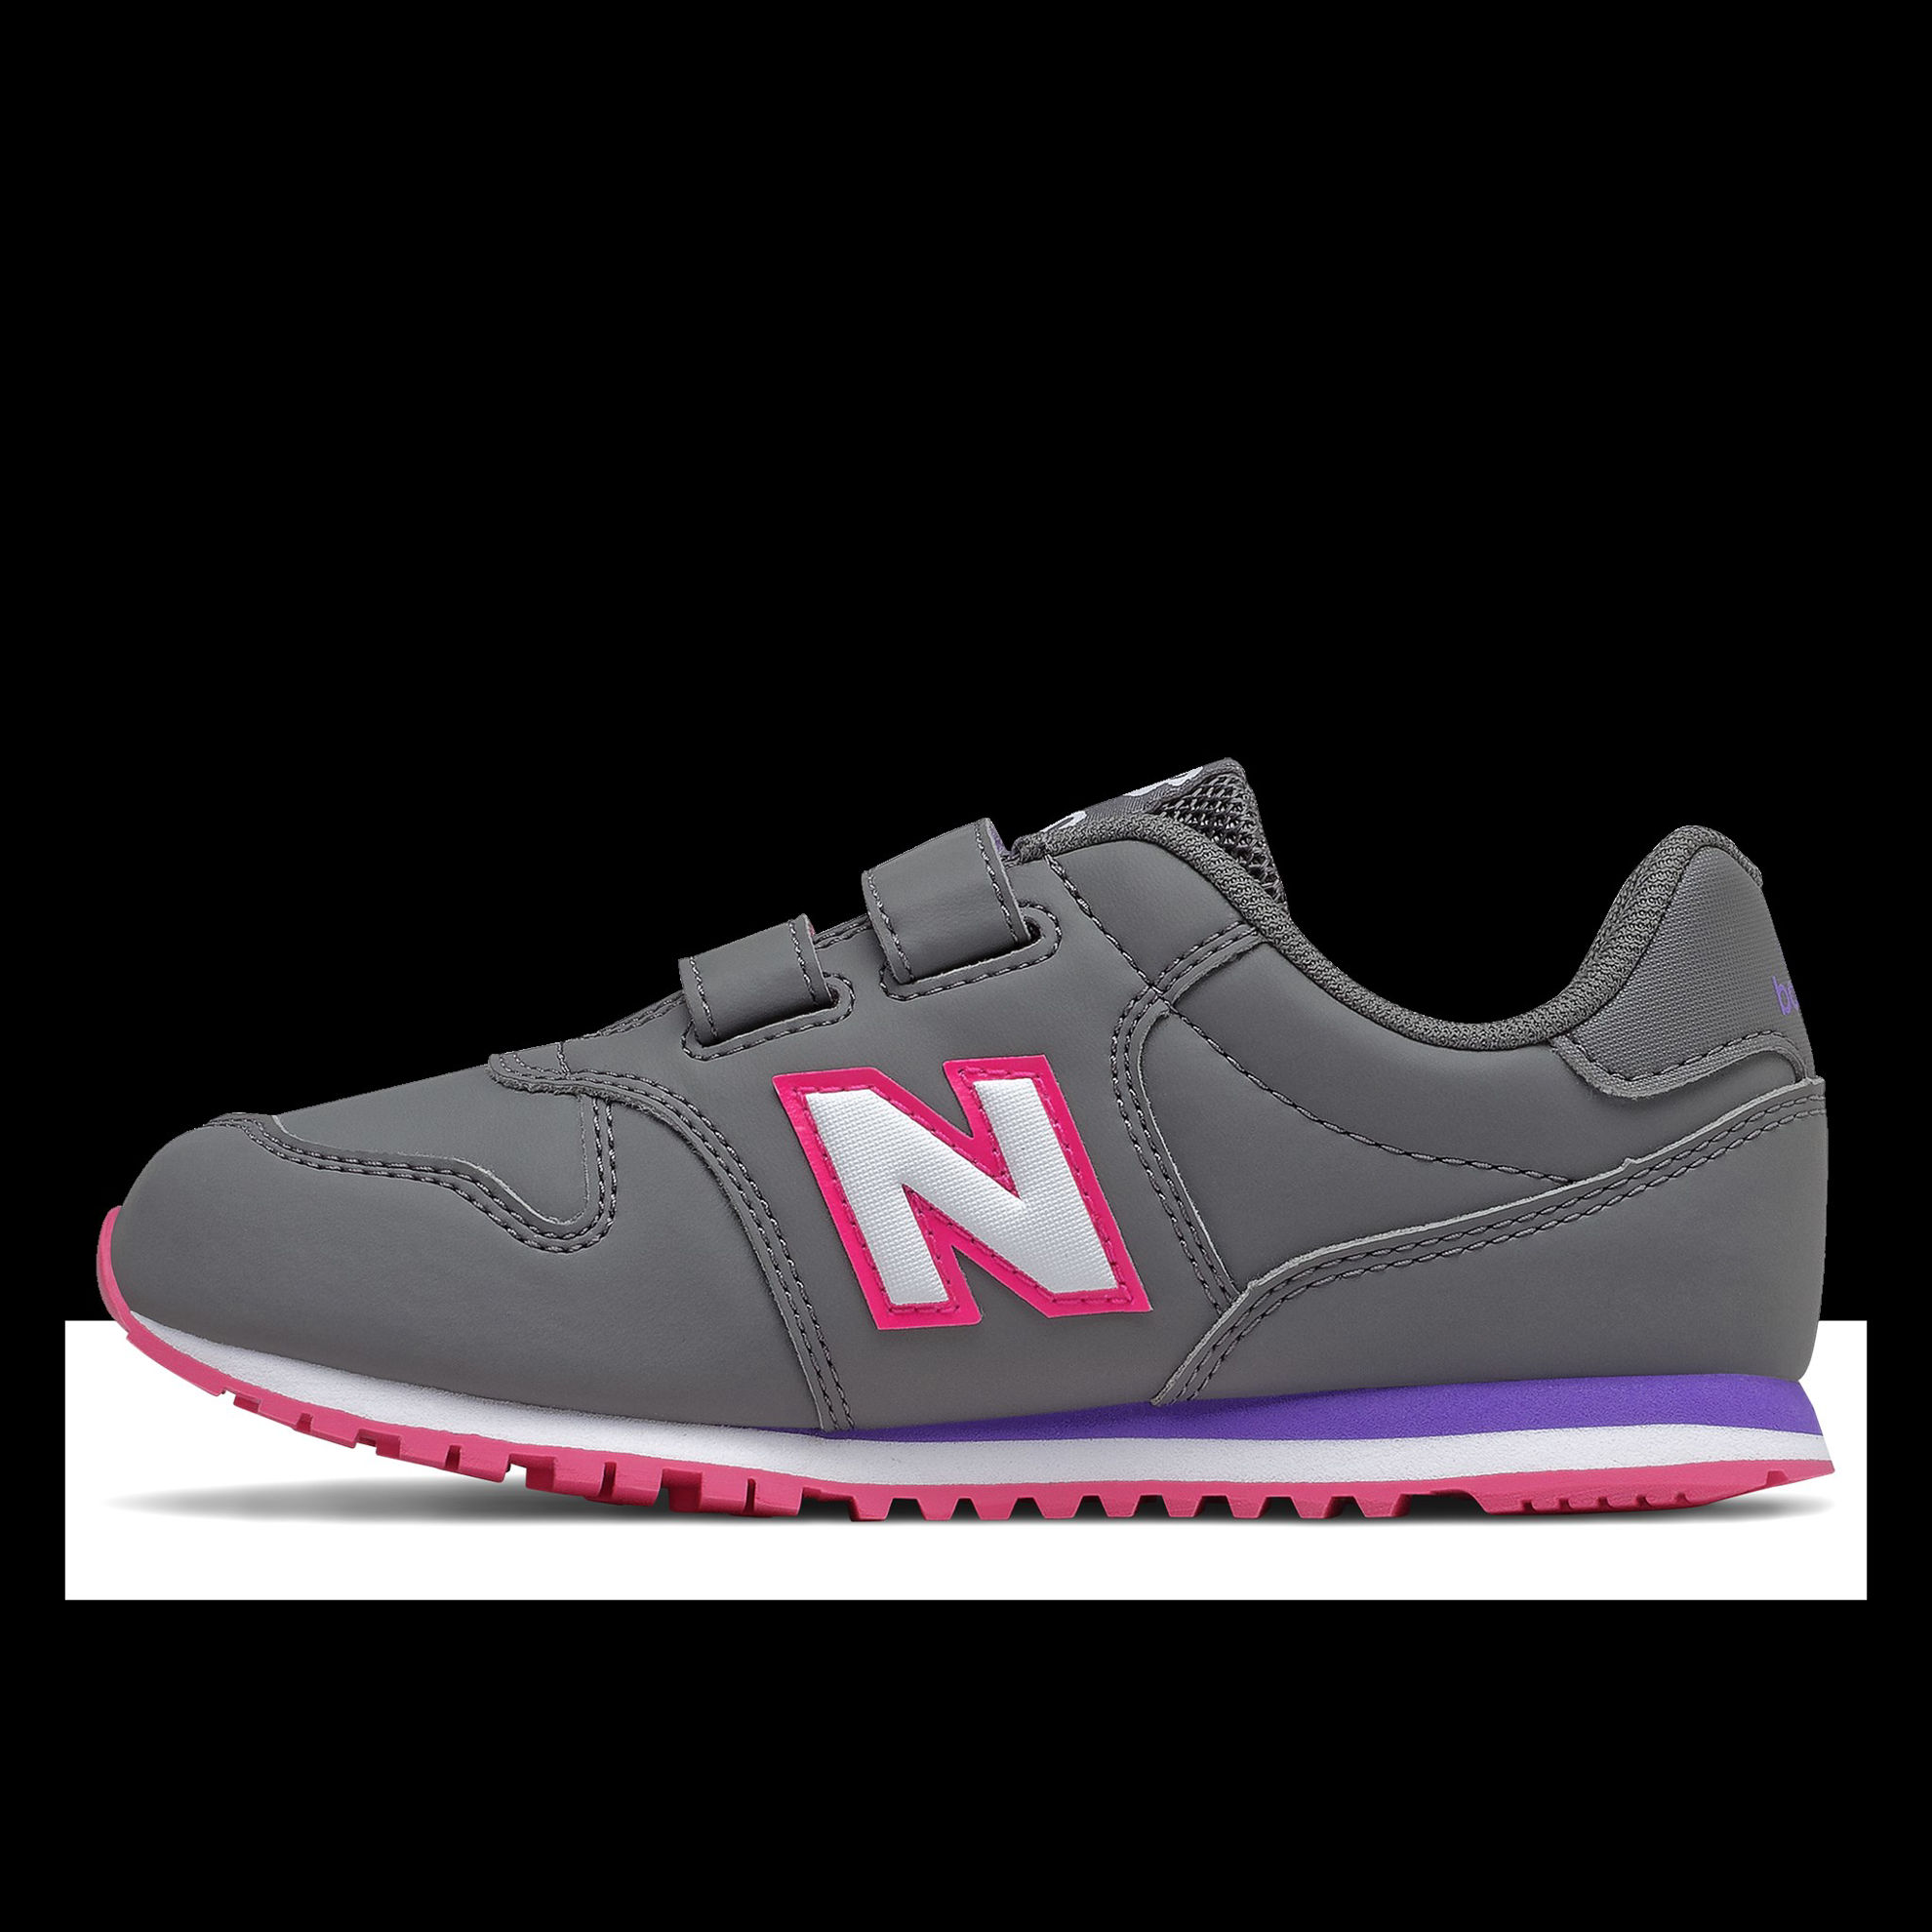 Immagine di SCARPA KIDS LIFESTYLE GREY/PINK SYNTHETIC / TEXTILE